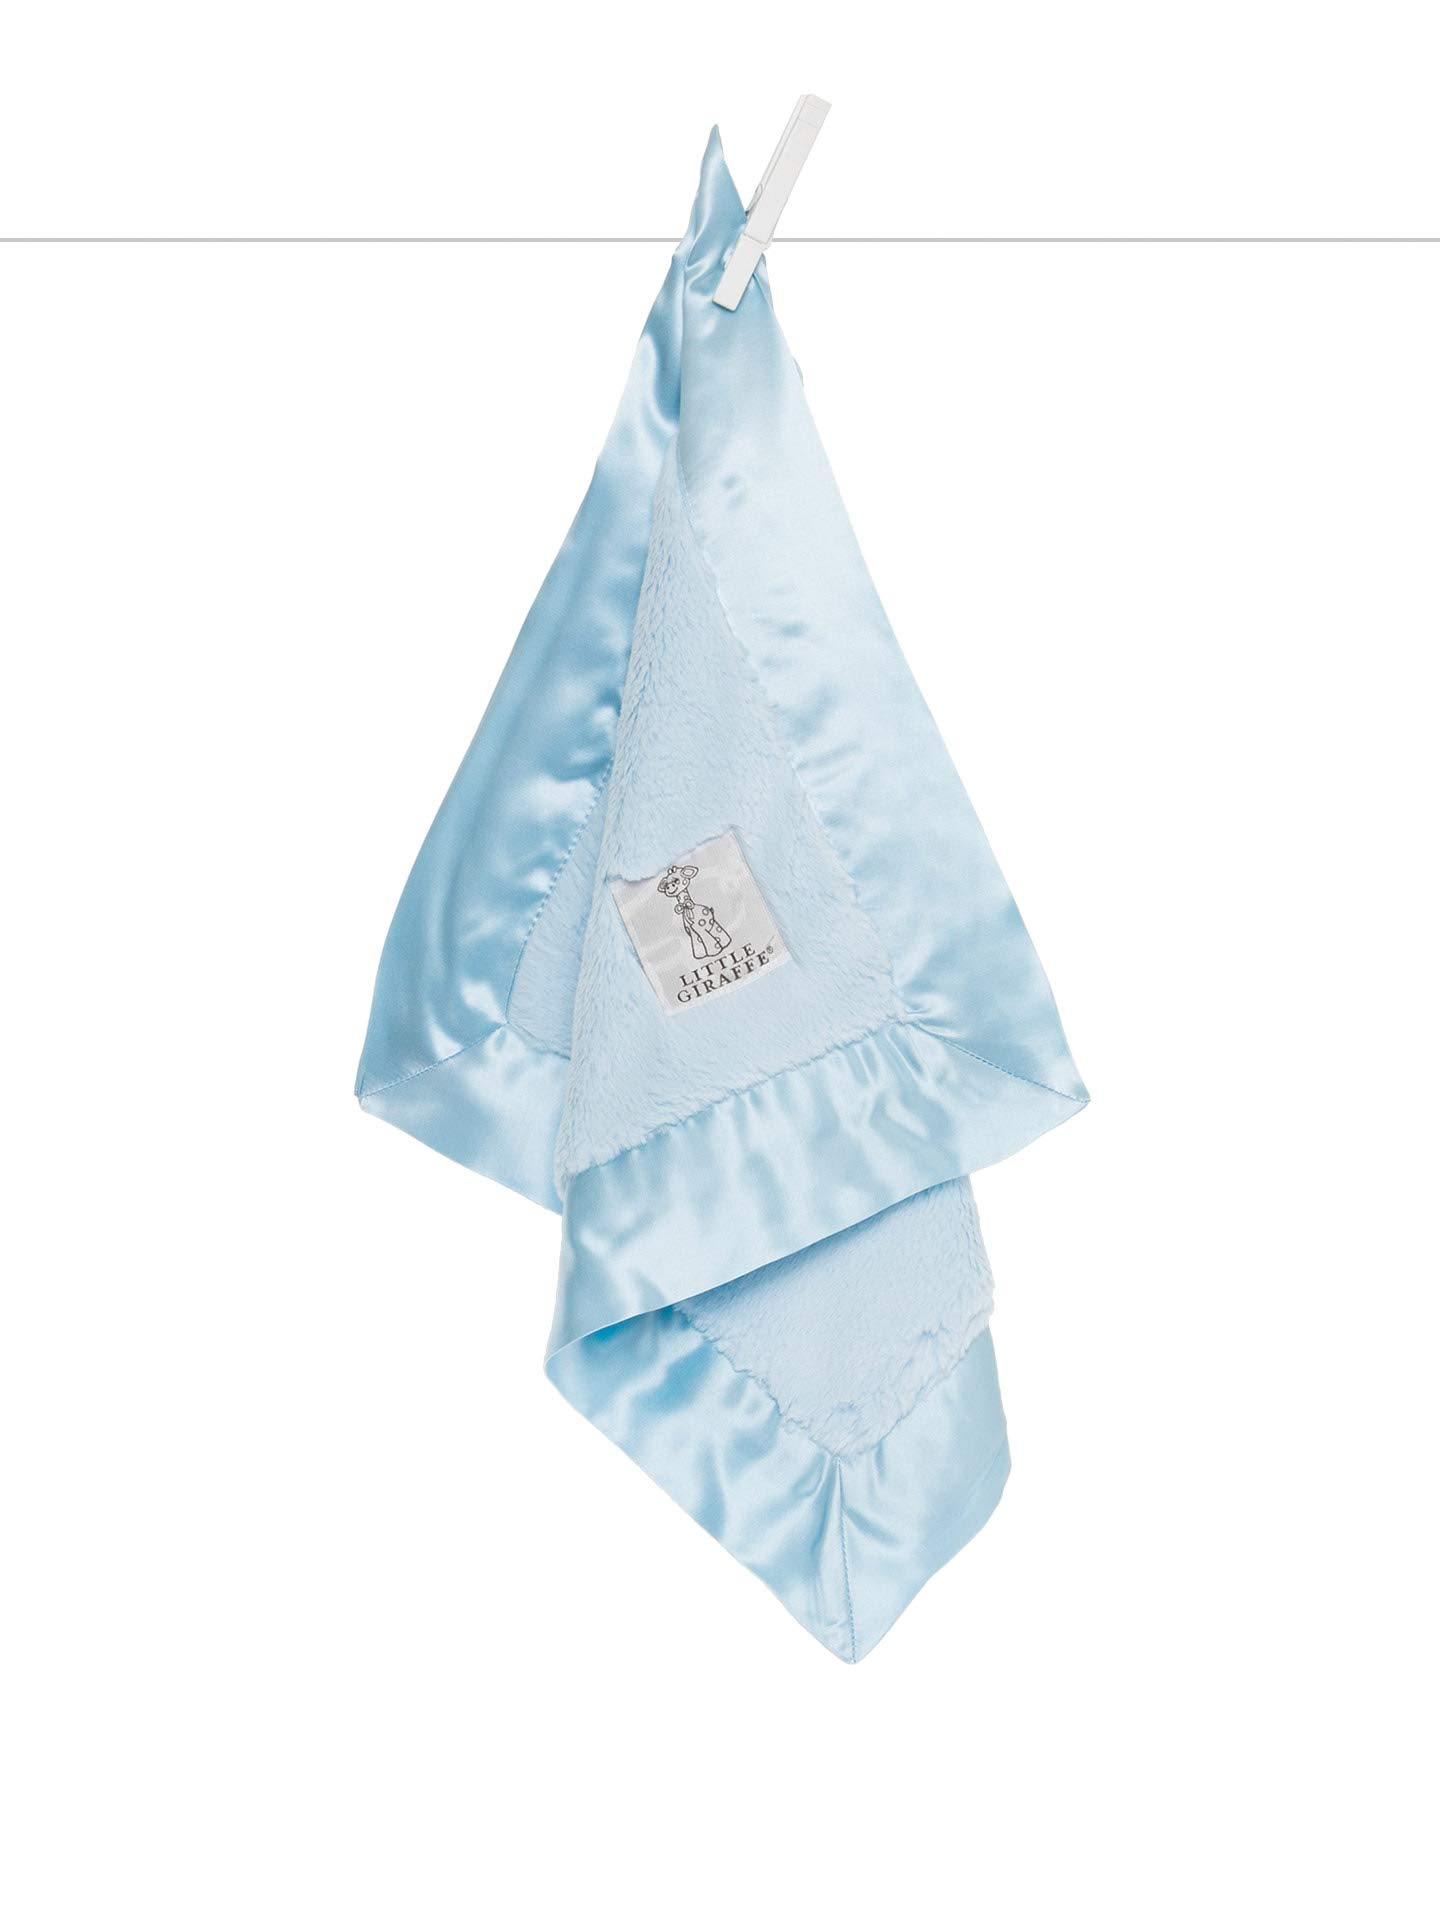 Little Giraffe Luxe Solid Blanky, Blue, 14'' x 14''